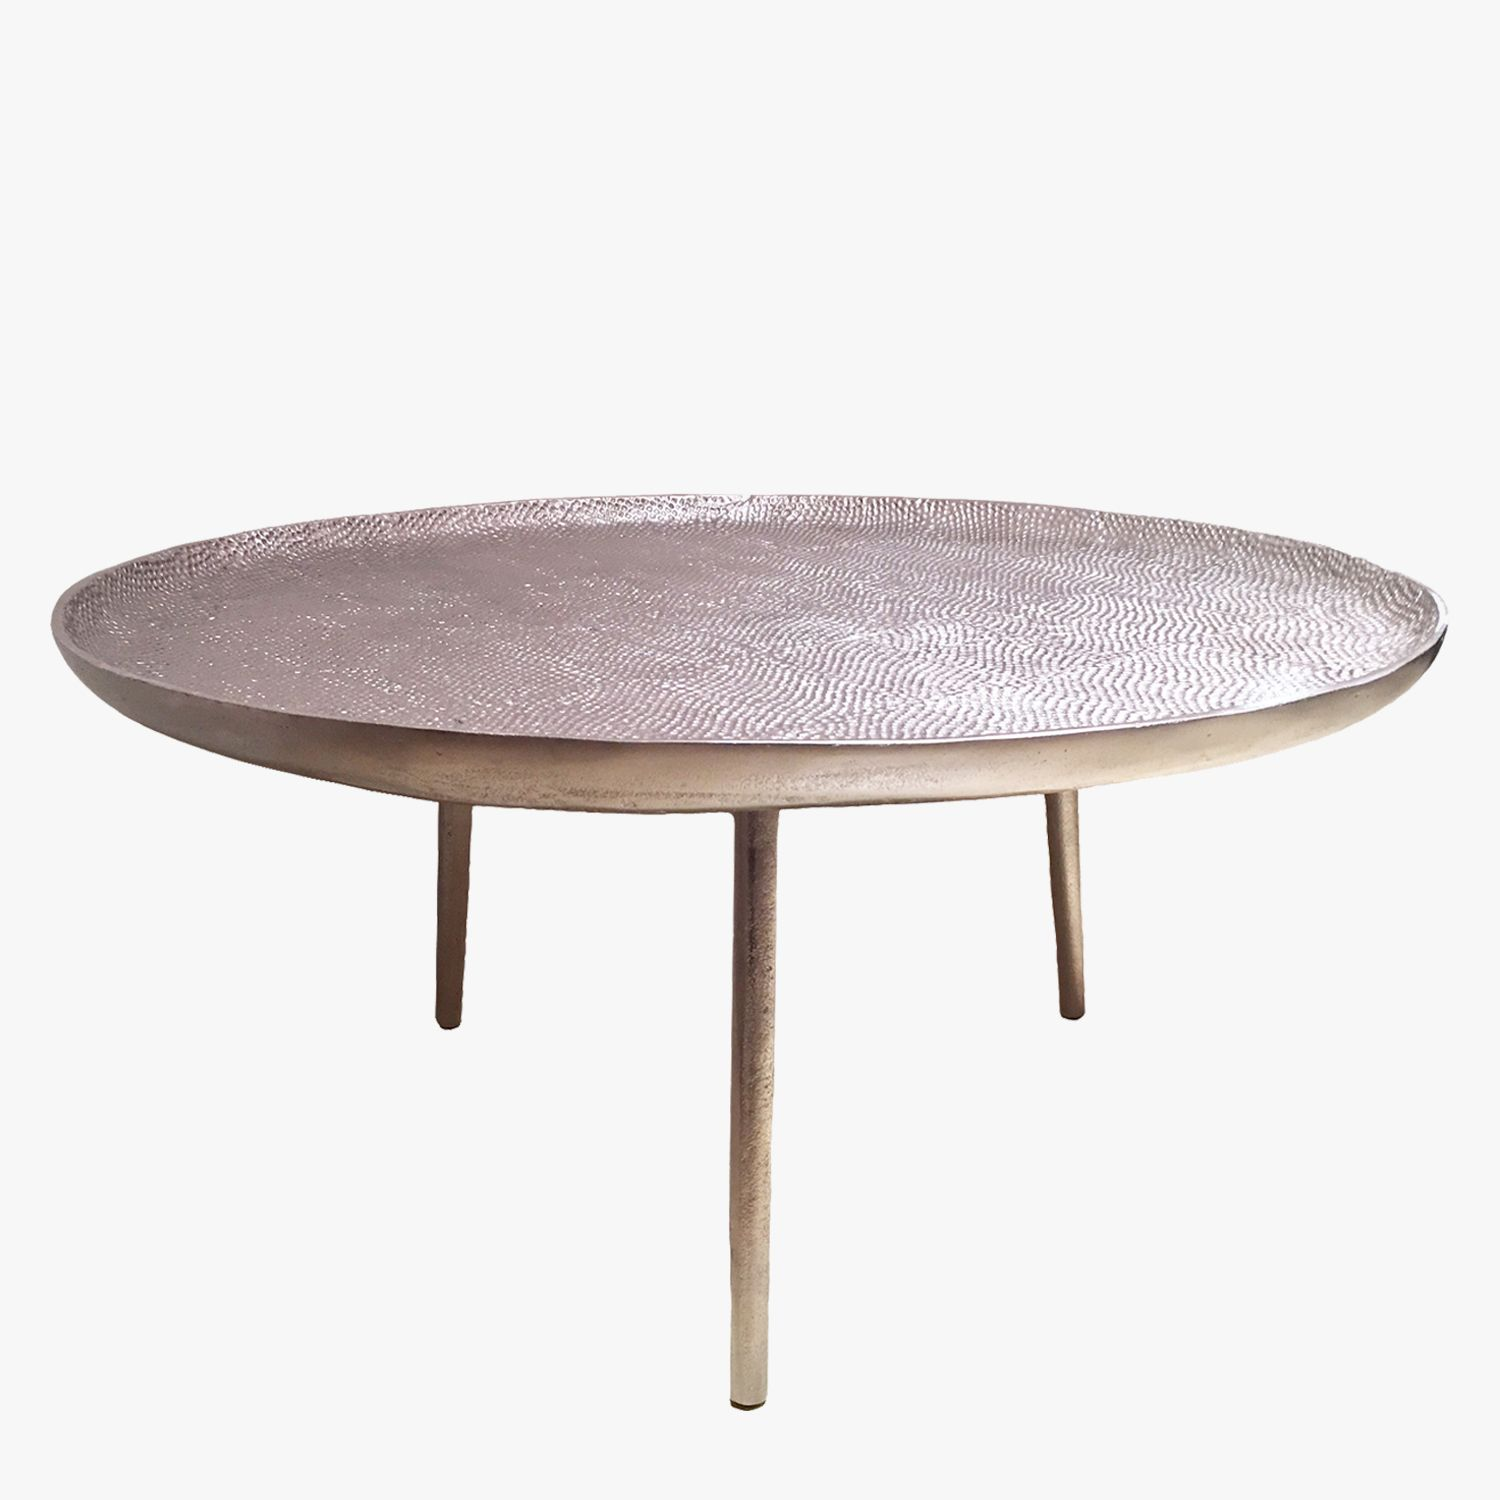 Our Lake Pewter Cocktail Table From Selamat Designs Lends A Global Chic Vibe To Any Space This Striking Round Cocktail Tables Coffee Table Cool Coffee Tables [ 1500 x 1500 Pixel ]